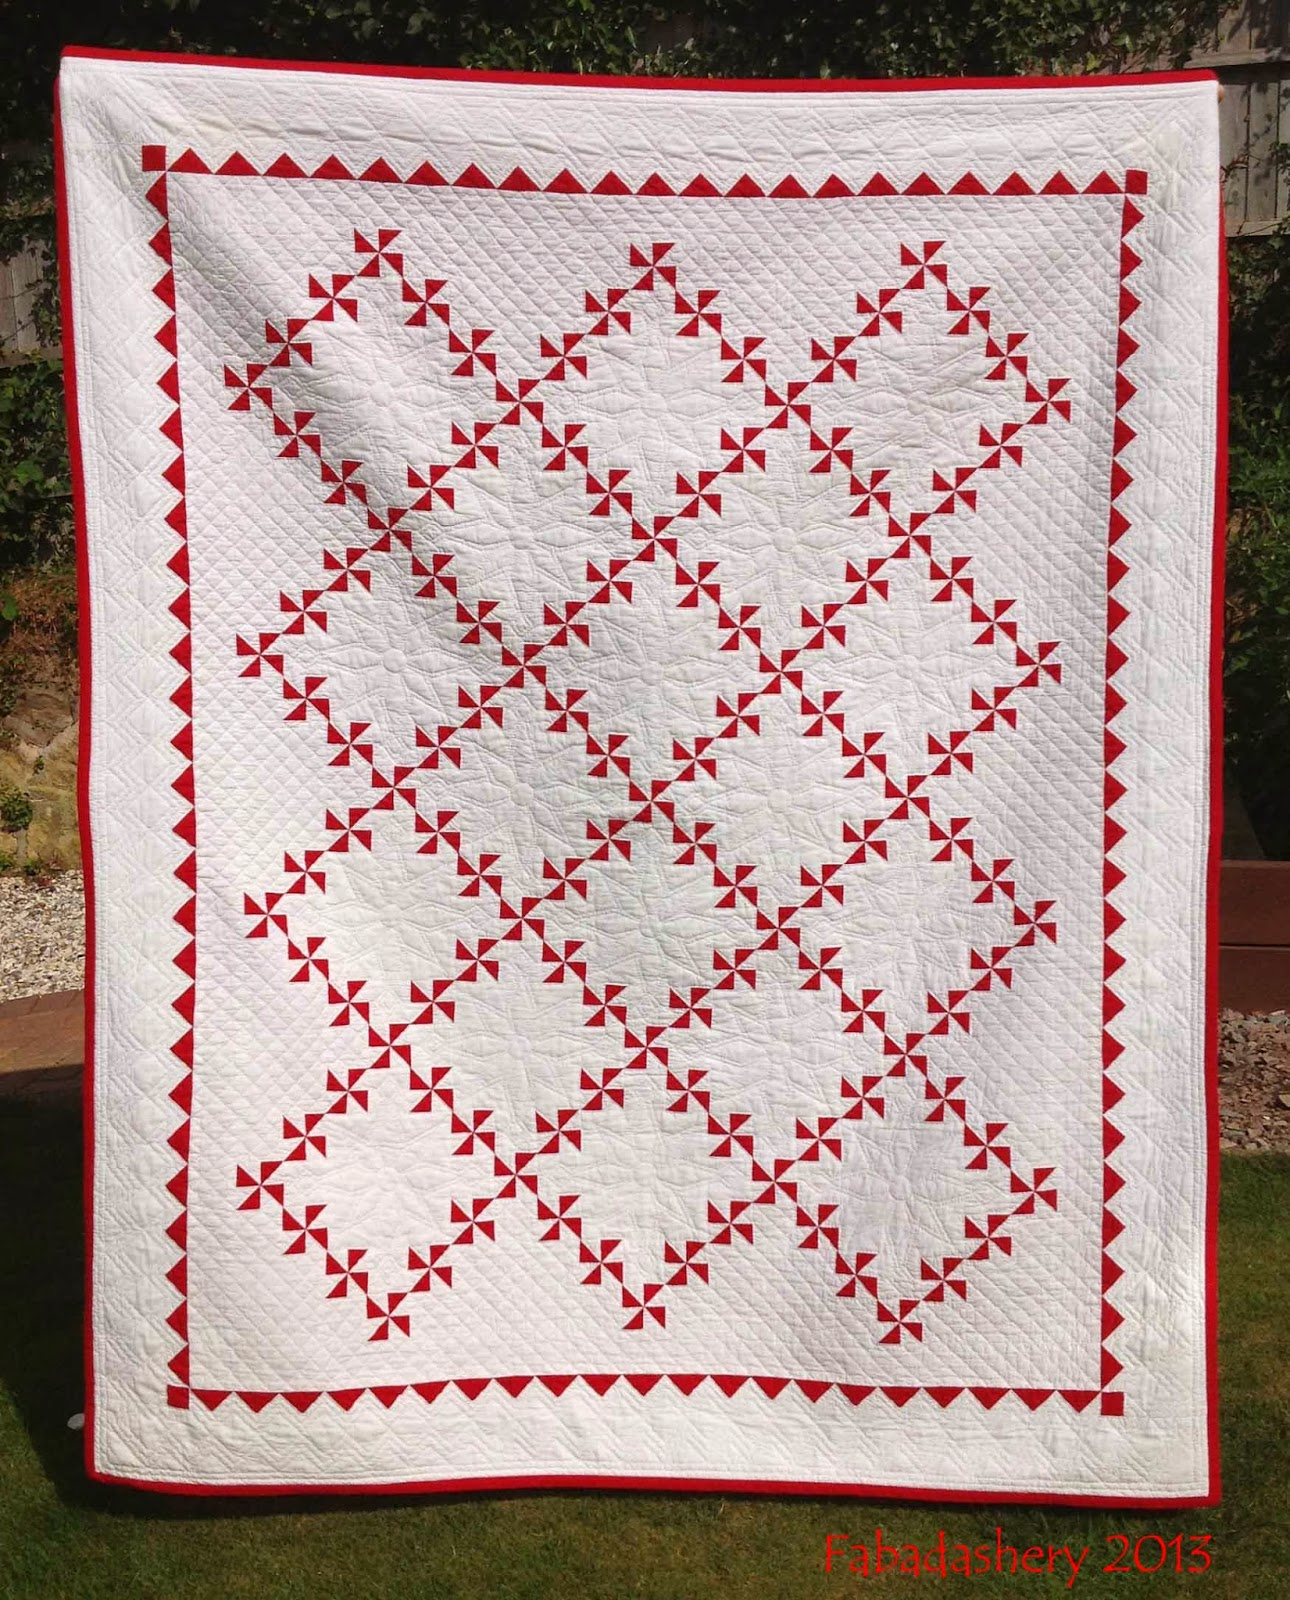 Fabadashery: Red and White Pinwheel Quilt : red and white quilt - Adamdwight.com